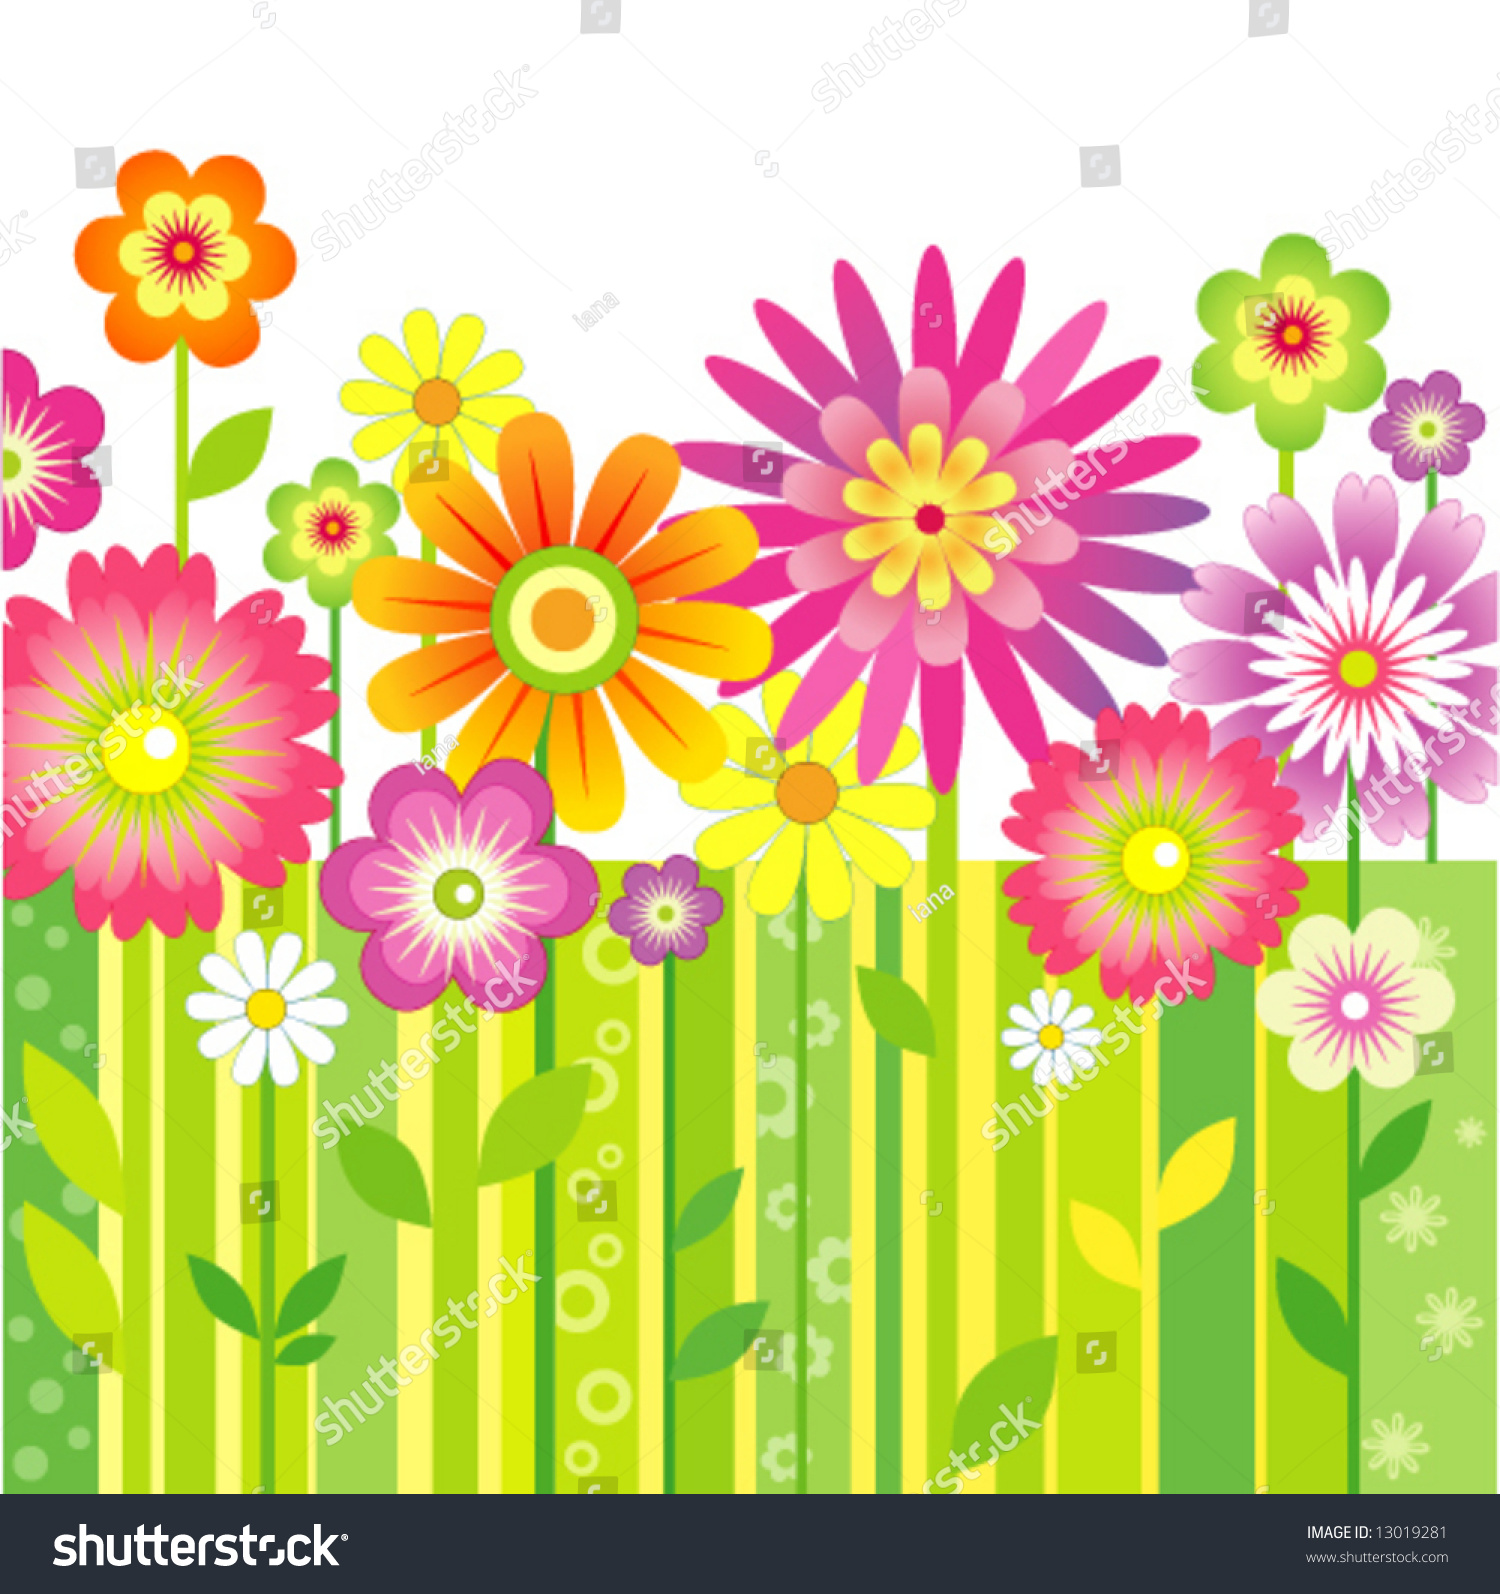 Spring flowers stock vector 13019281 shutterstock for Spring craft shows near me